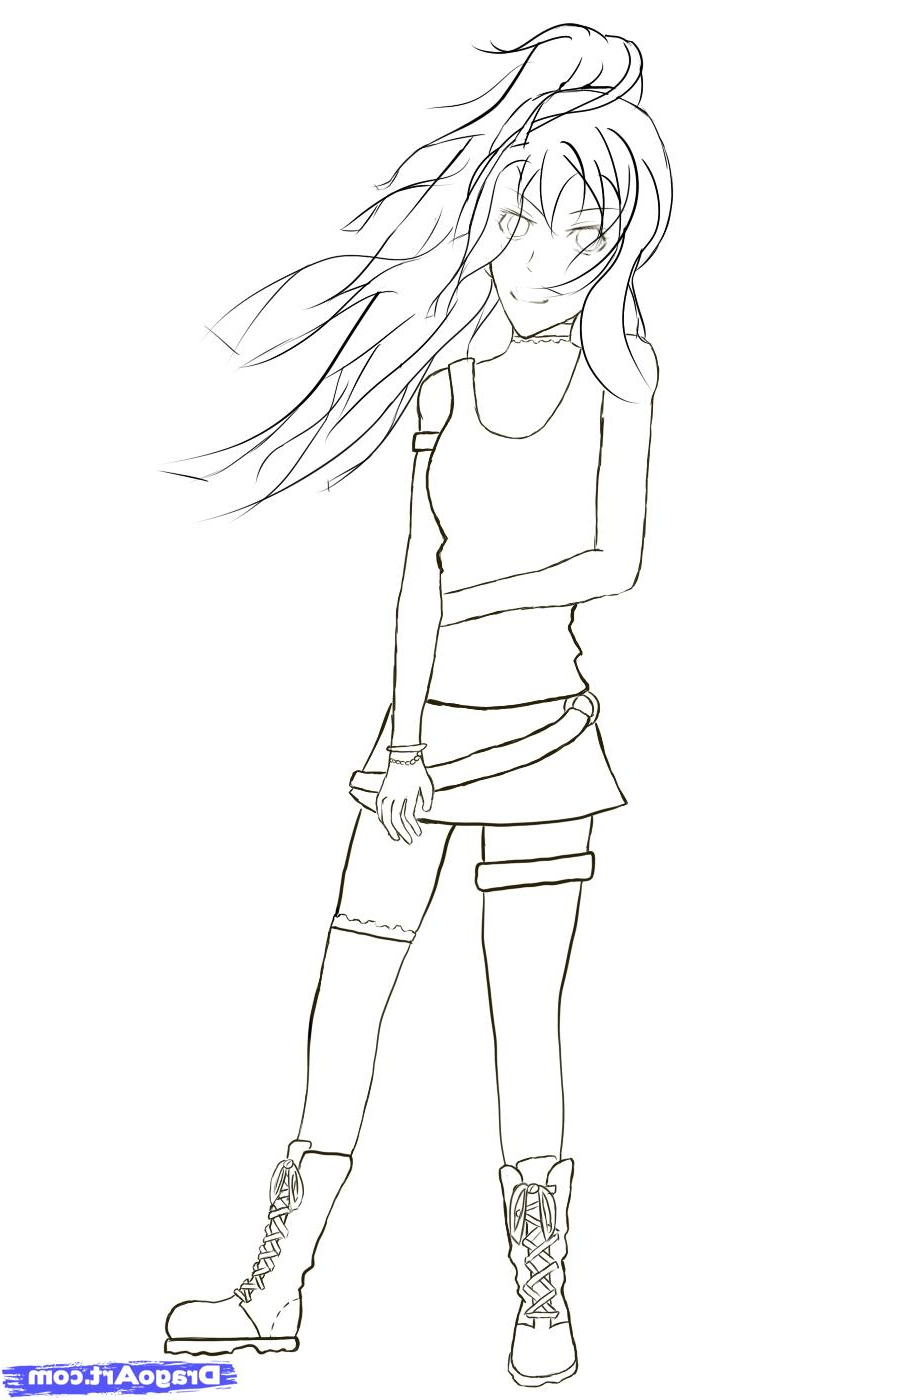 900x1400 How To Draw An Anime Girl Easy Easy Anime Pencil Drawing Girl Full